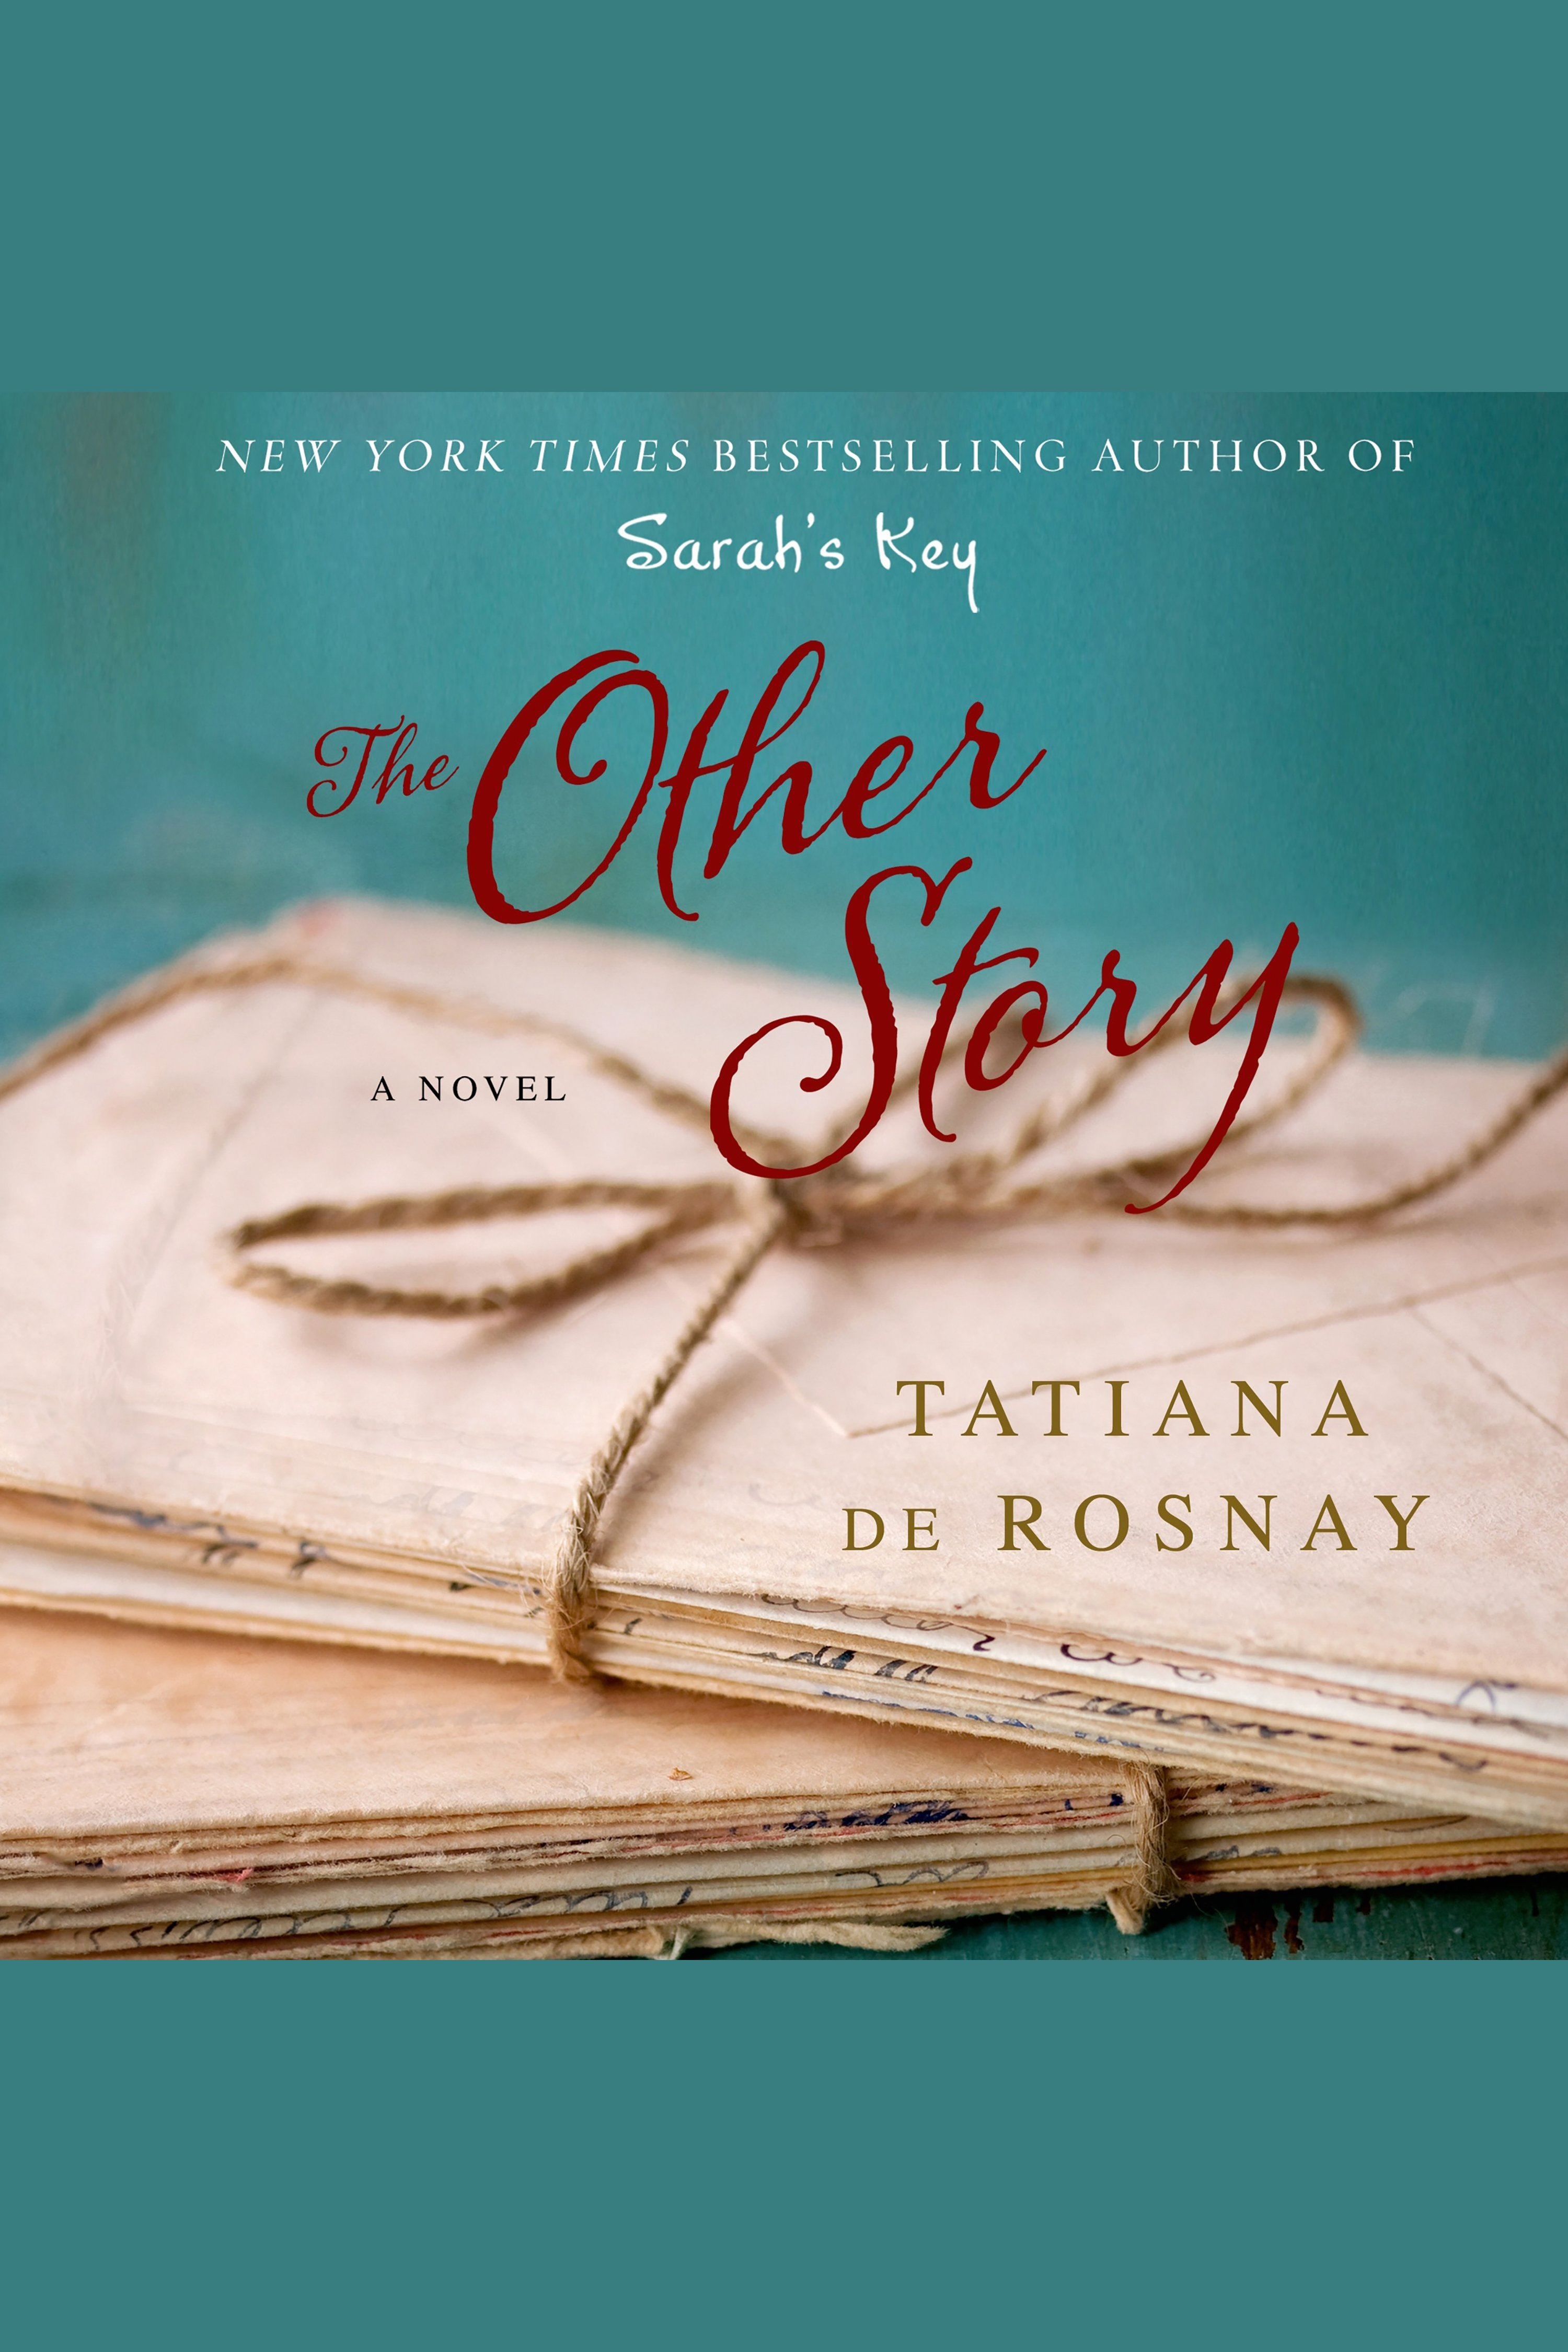 The other story cover image